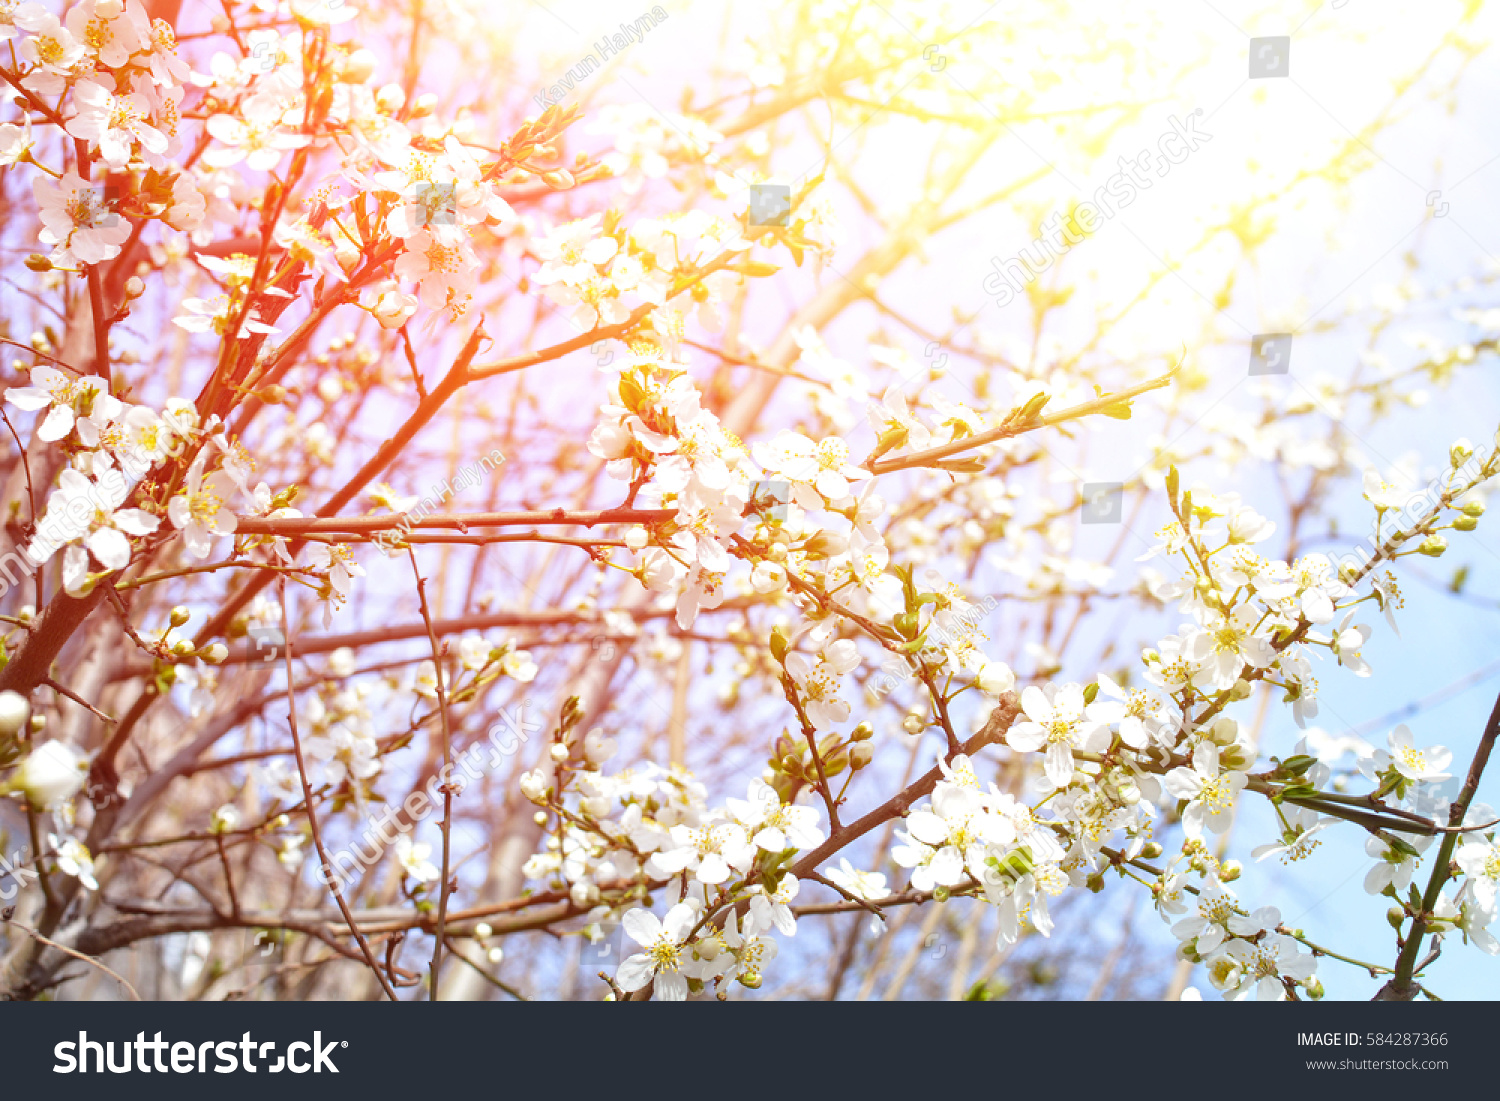 Apple tree spring blooms in soft background of branches and sky id 584287366 mightylinksfo